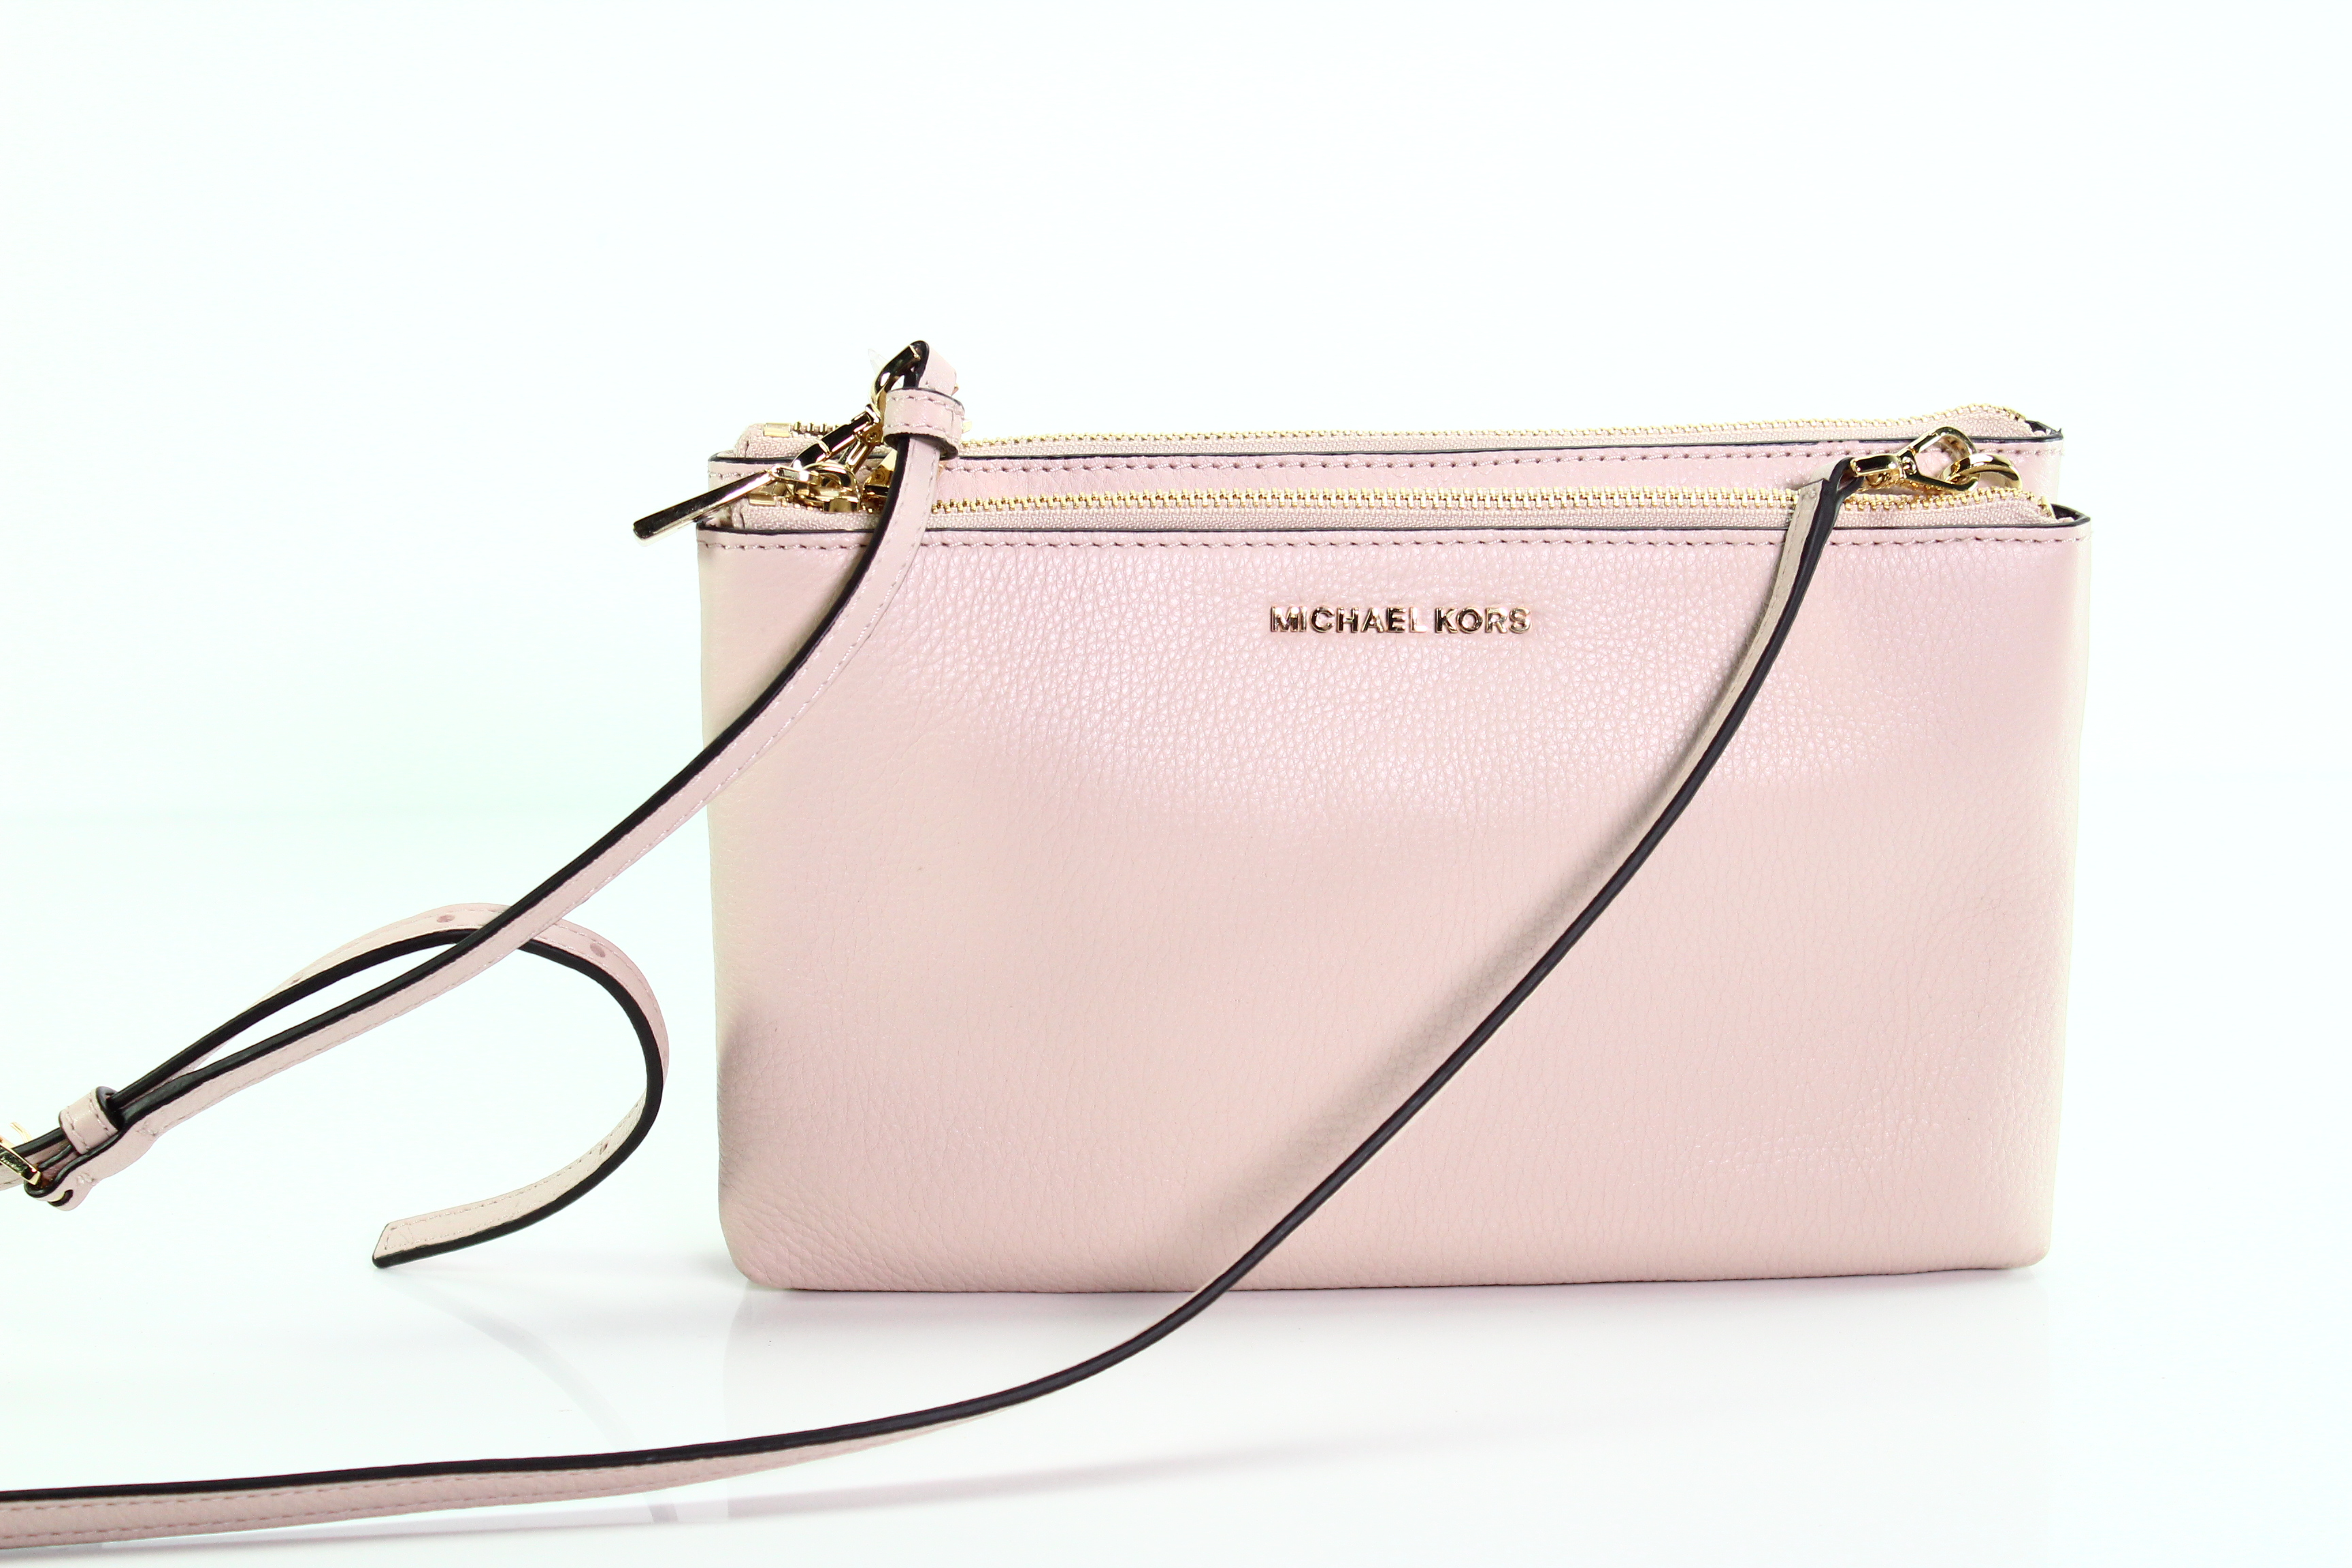 81349c9bfe7a Michael Kors NEW Soft Pink Adele Double Zip Crossbody Leather Bag $198- #009